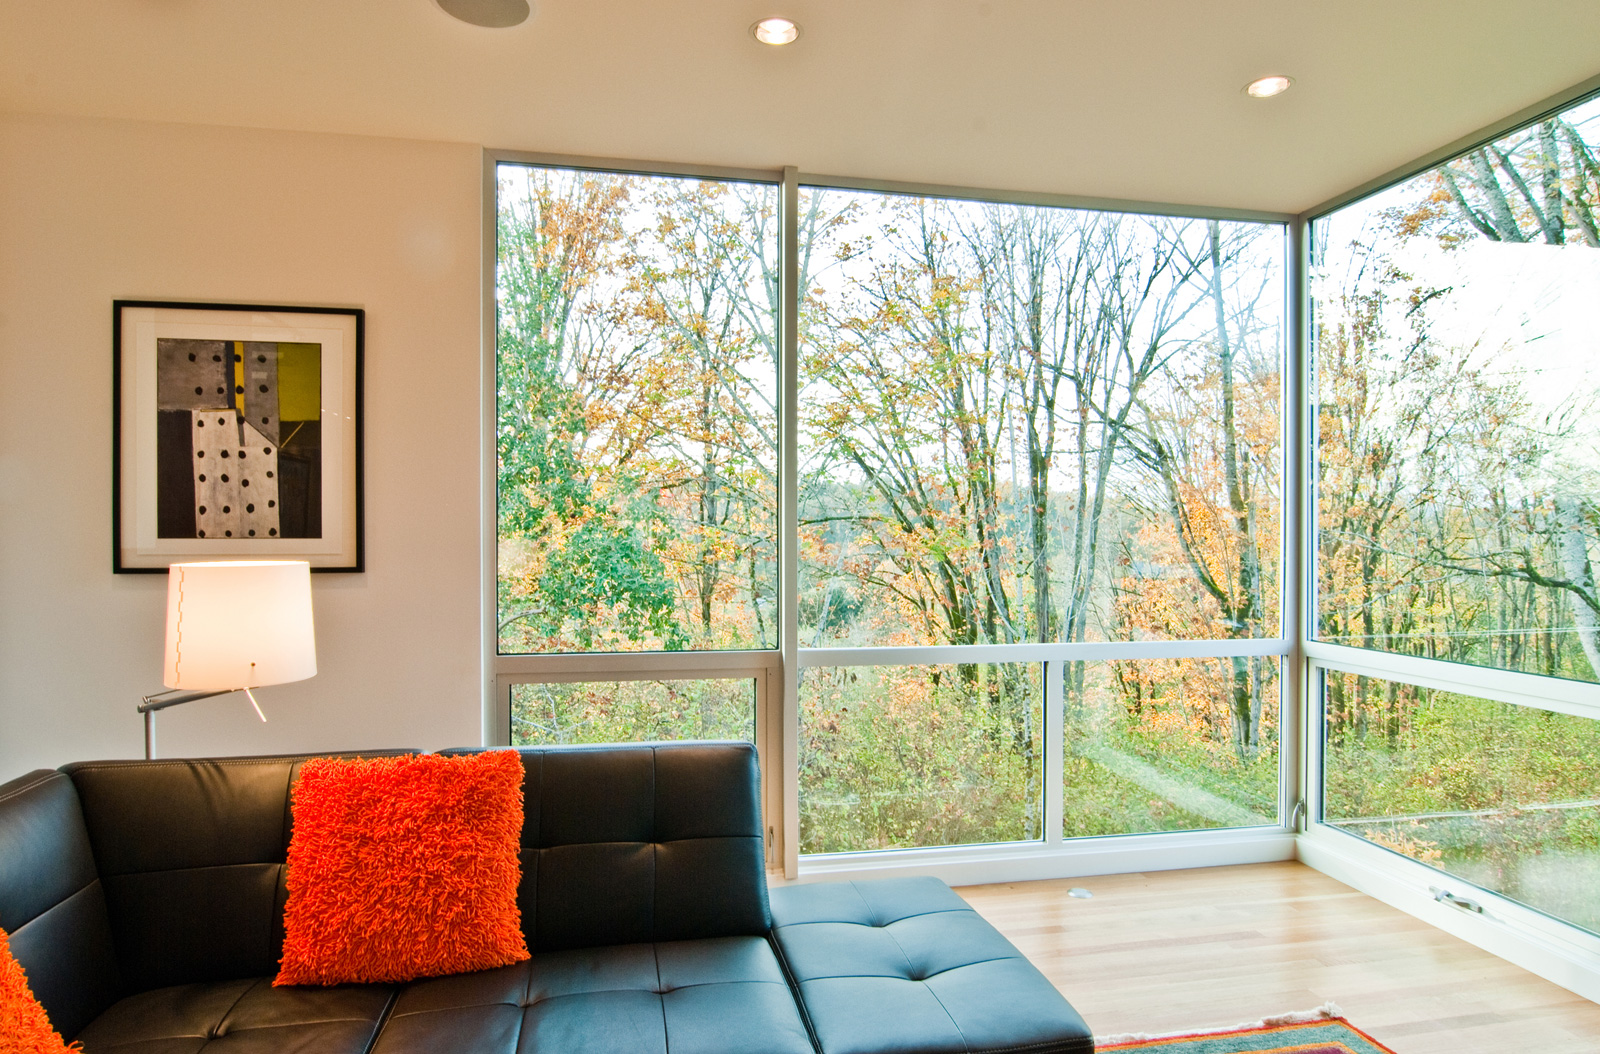 Top 10 things to know about aluminum windows build blog for Top window design